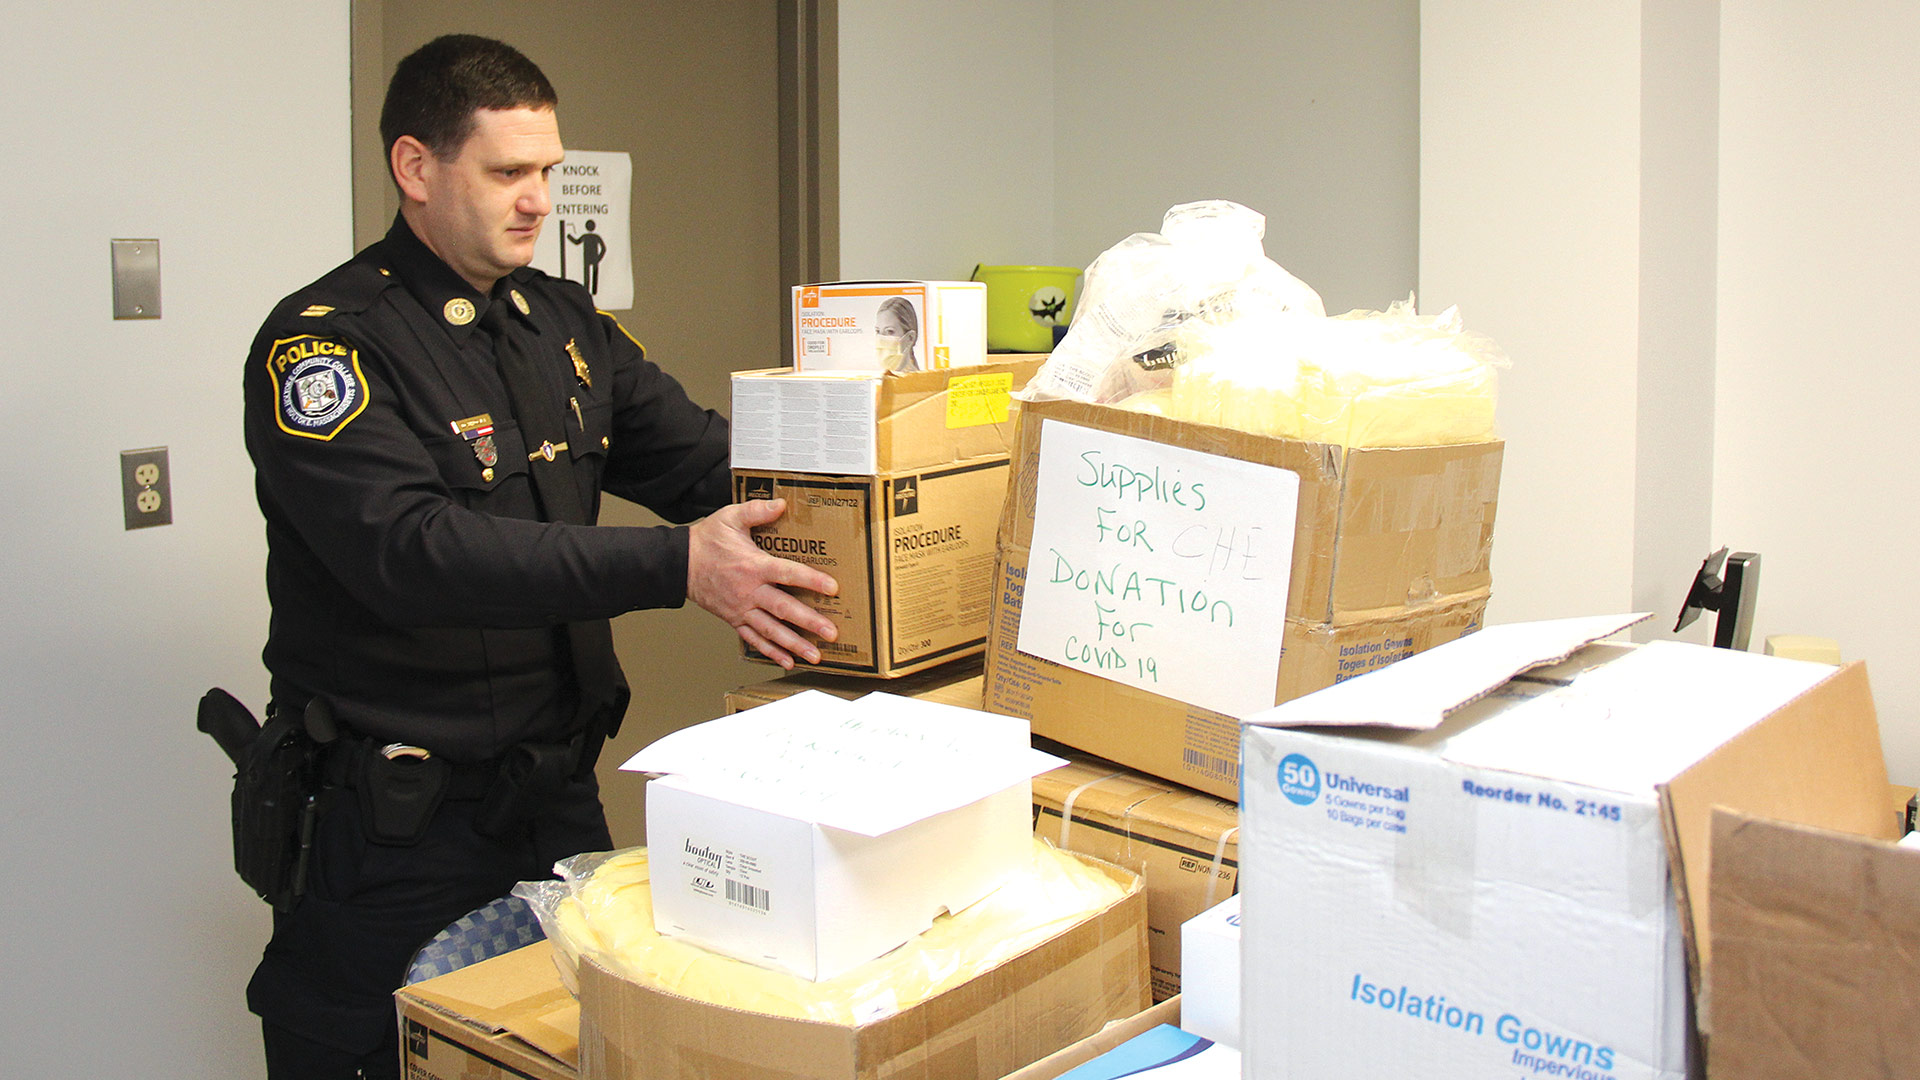 HCC Police Captain Dale Brown stacks boxes